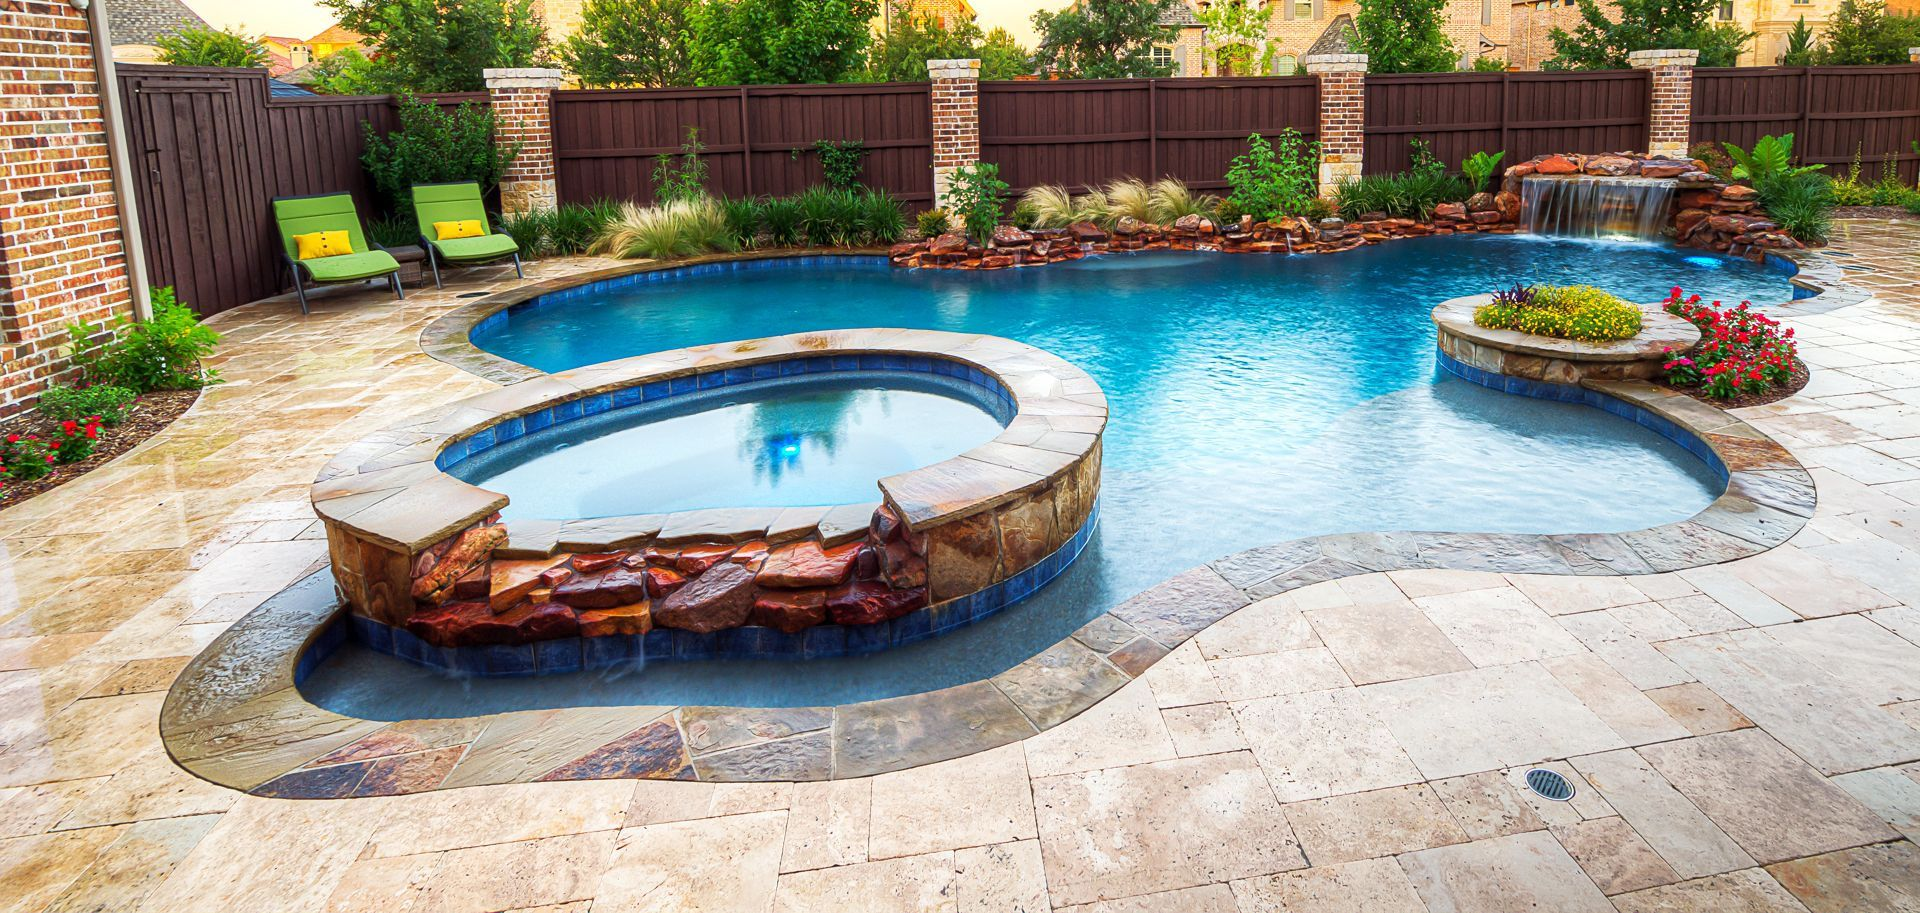 Floating Hot Tub Rock Spillway Grotto Table Rock Water Fall Swimming Pool House Pool Water Features Pool Houses